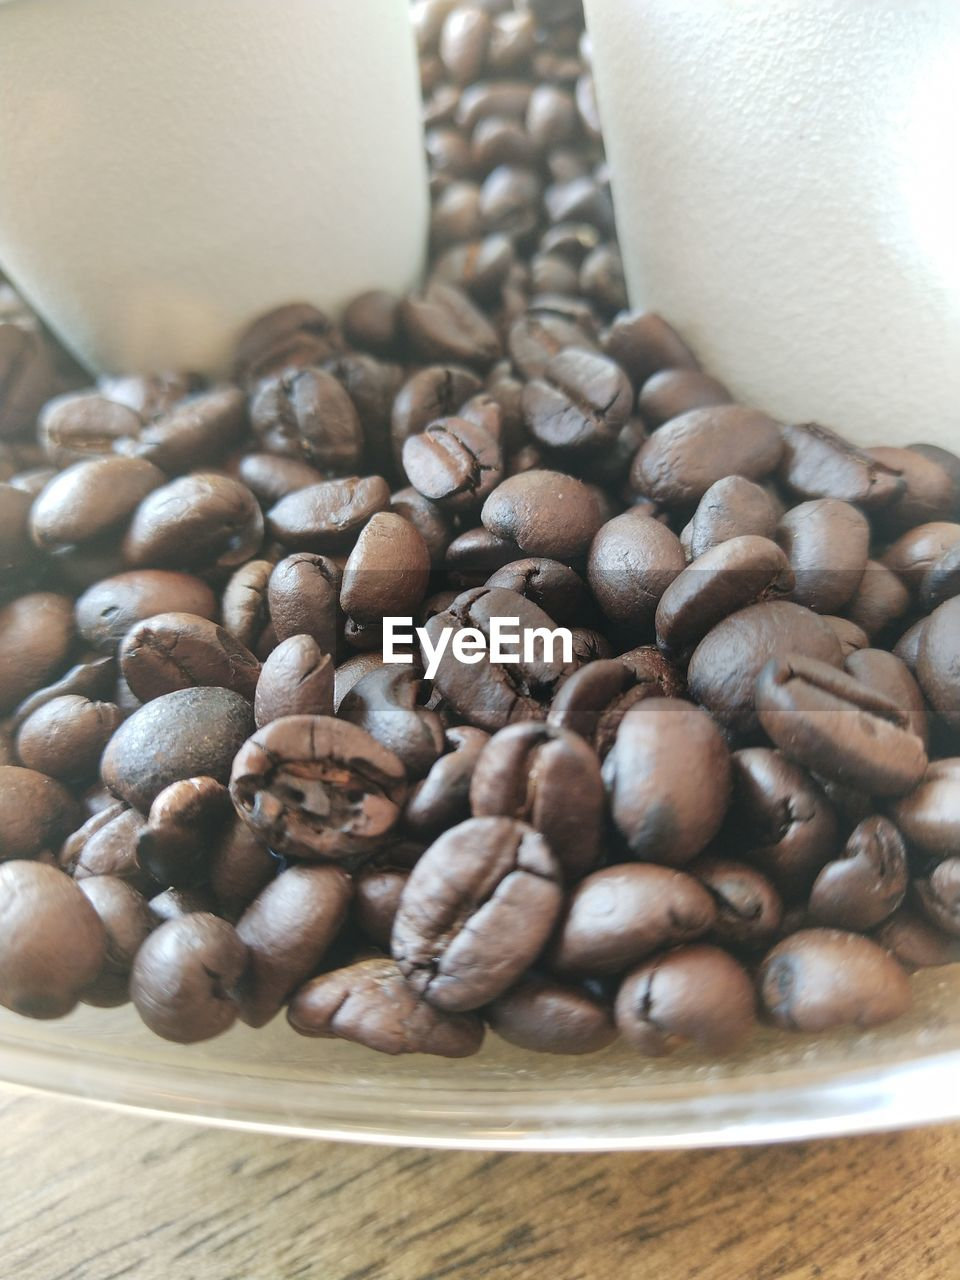 coffee, coffee - drink, food and drink, roasted coffee bean, still life, food, brown, freshness, indoors, large group of objects, table, close-up, no people, high angle view, coffee bean, abundance, refreshment, drink, cup, roasted, caffeine